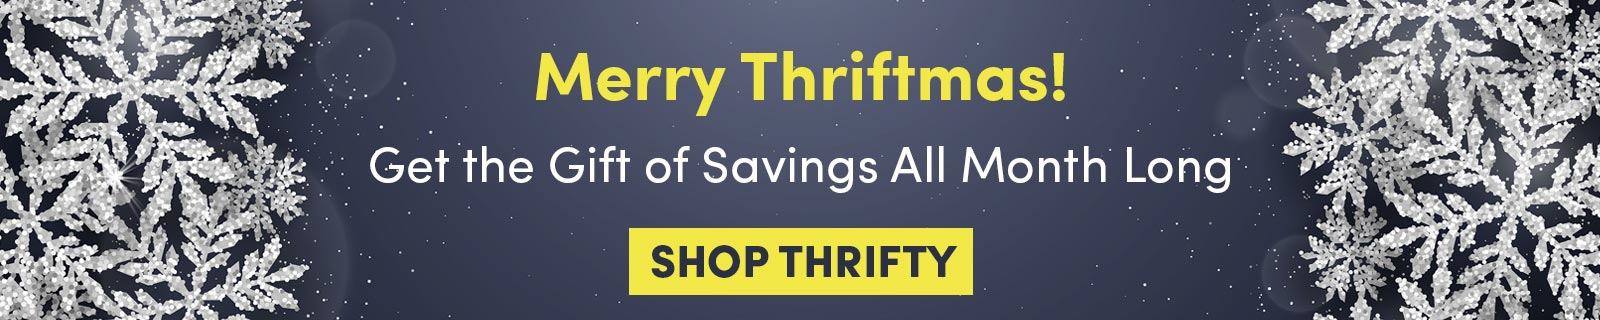 Merry Thriftmas! Get the Gift of Savings All Month Long SHOP THRIFTY